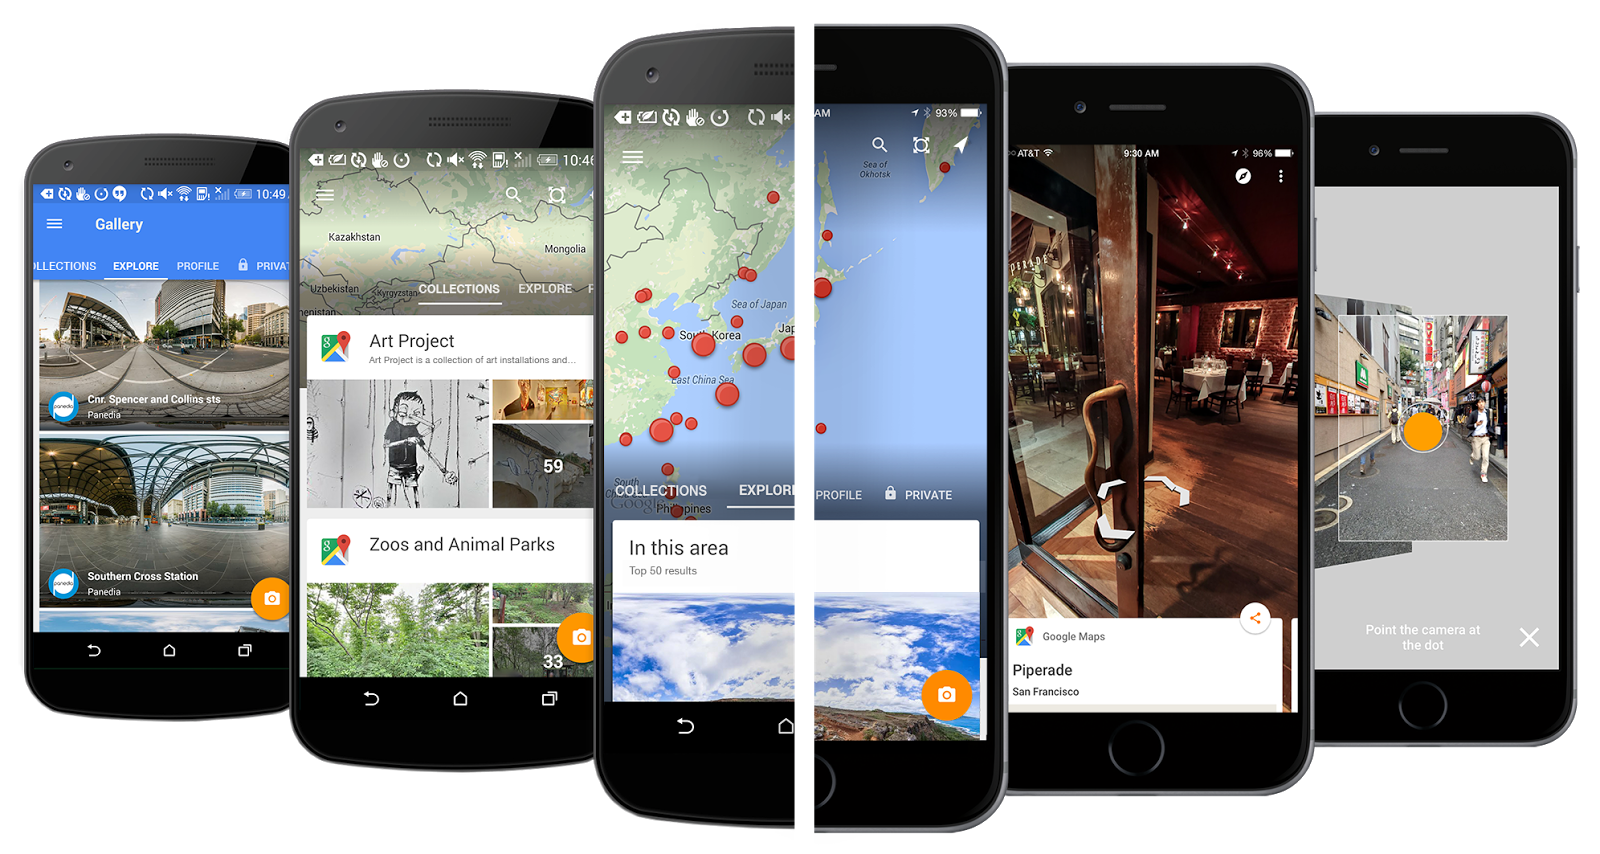 Introducing the new Street View app from Google Maps